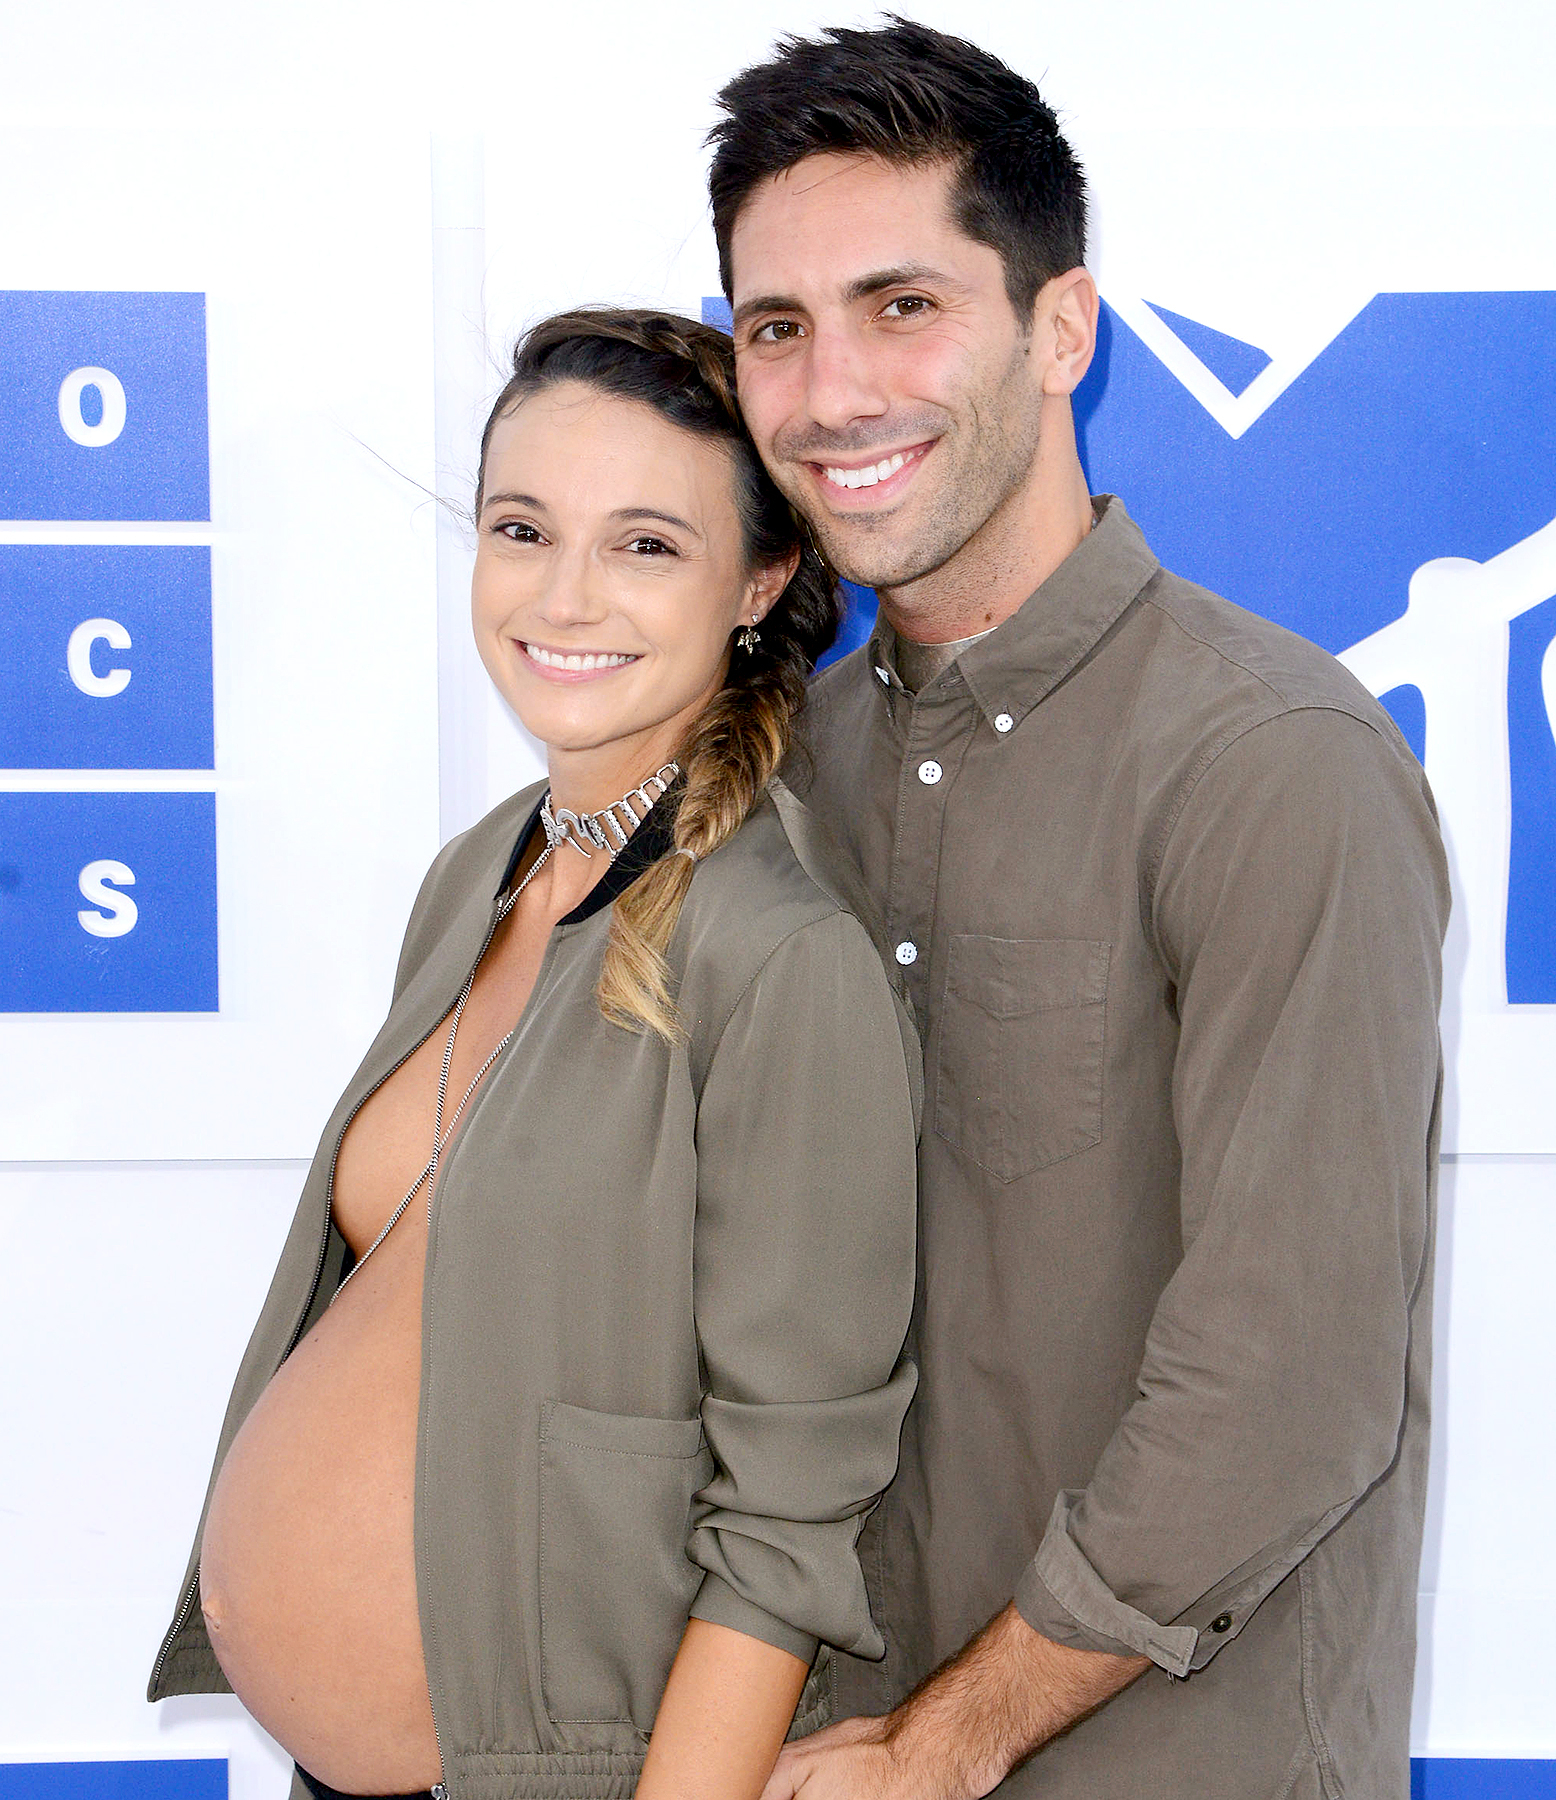 Nev Schulman and Laura Perlongo attend the 2016 MTV Video Music Awards.